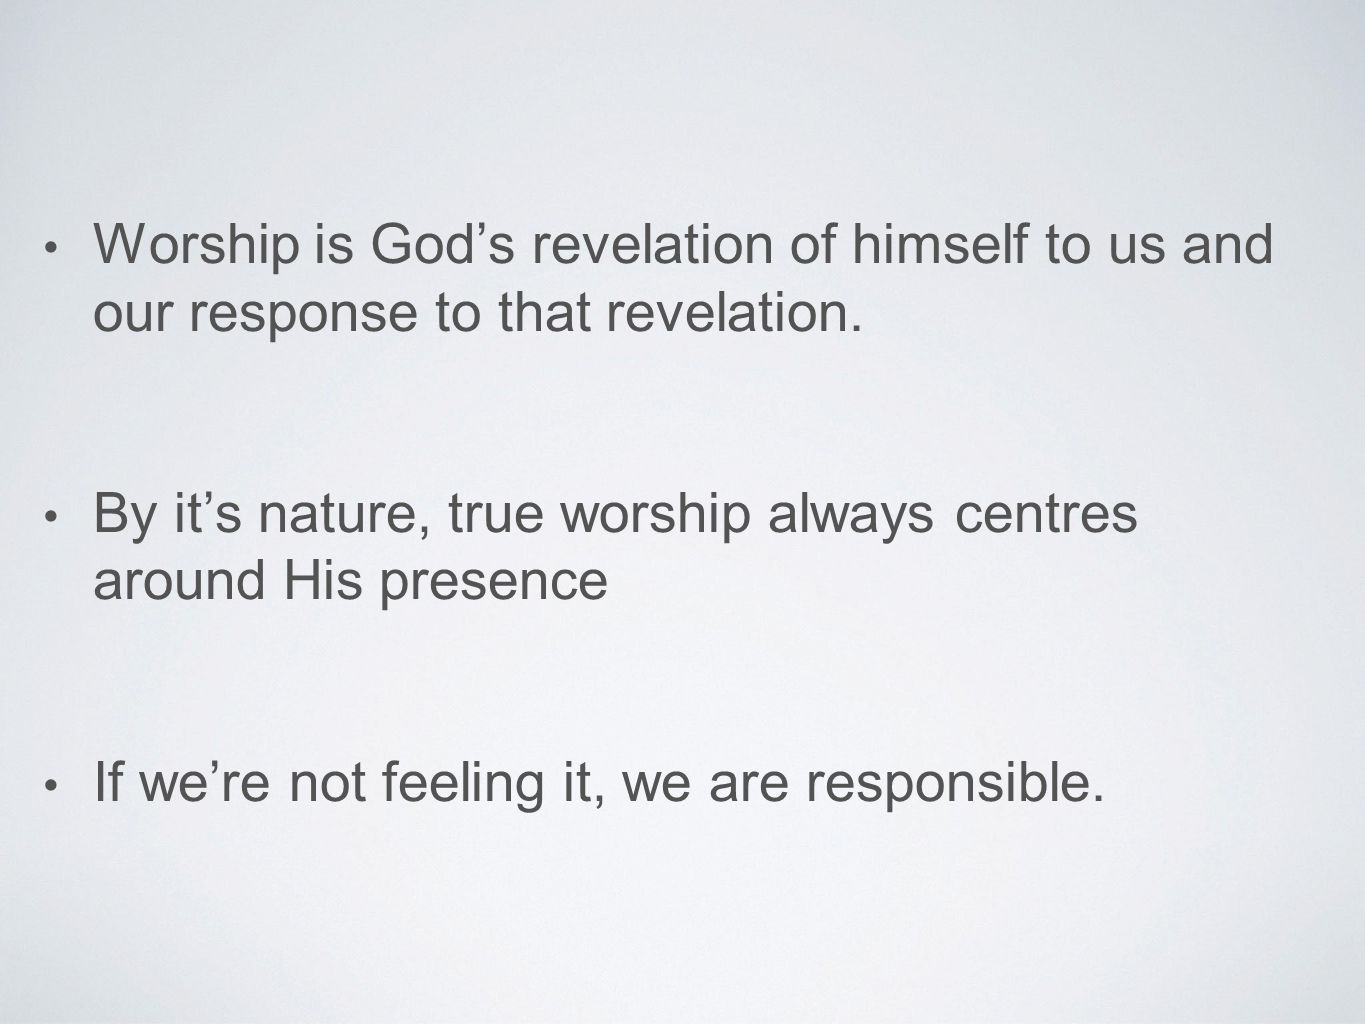 Worship is God's revelation of himself to us and our response to that revelation.